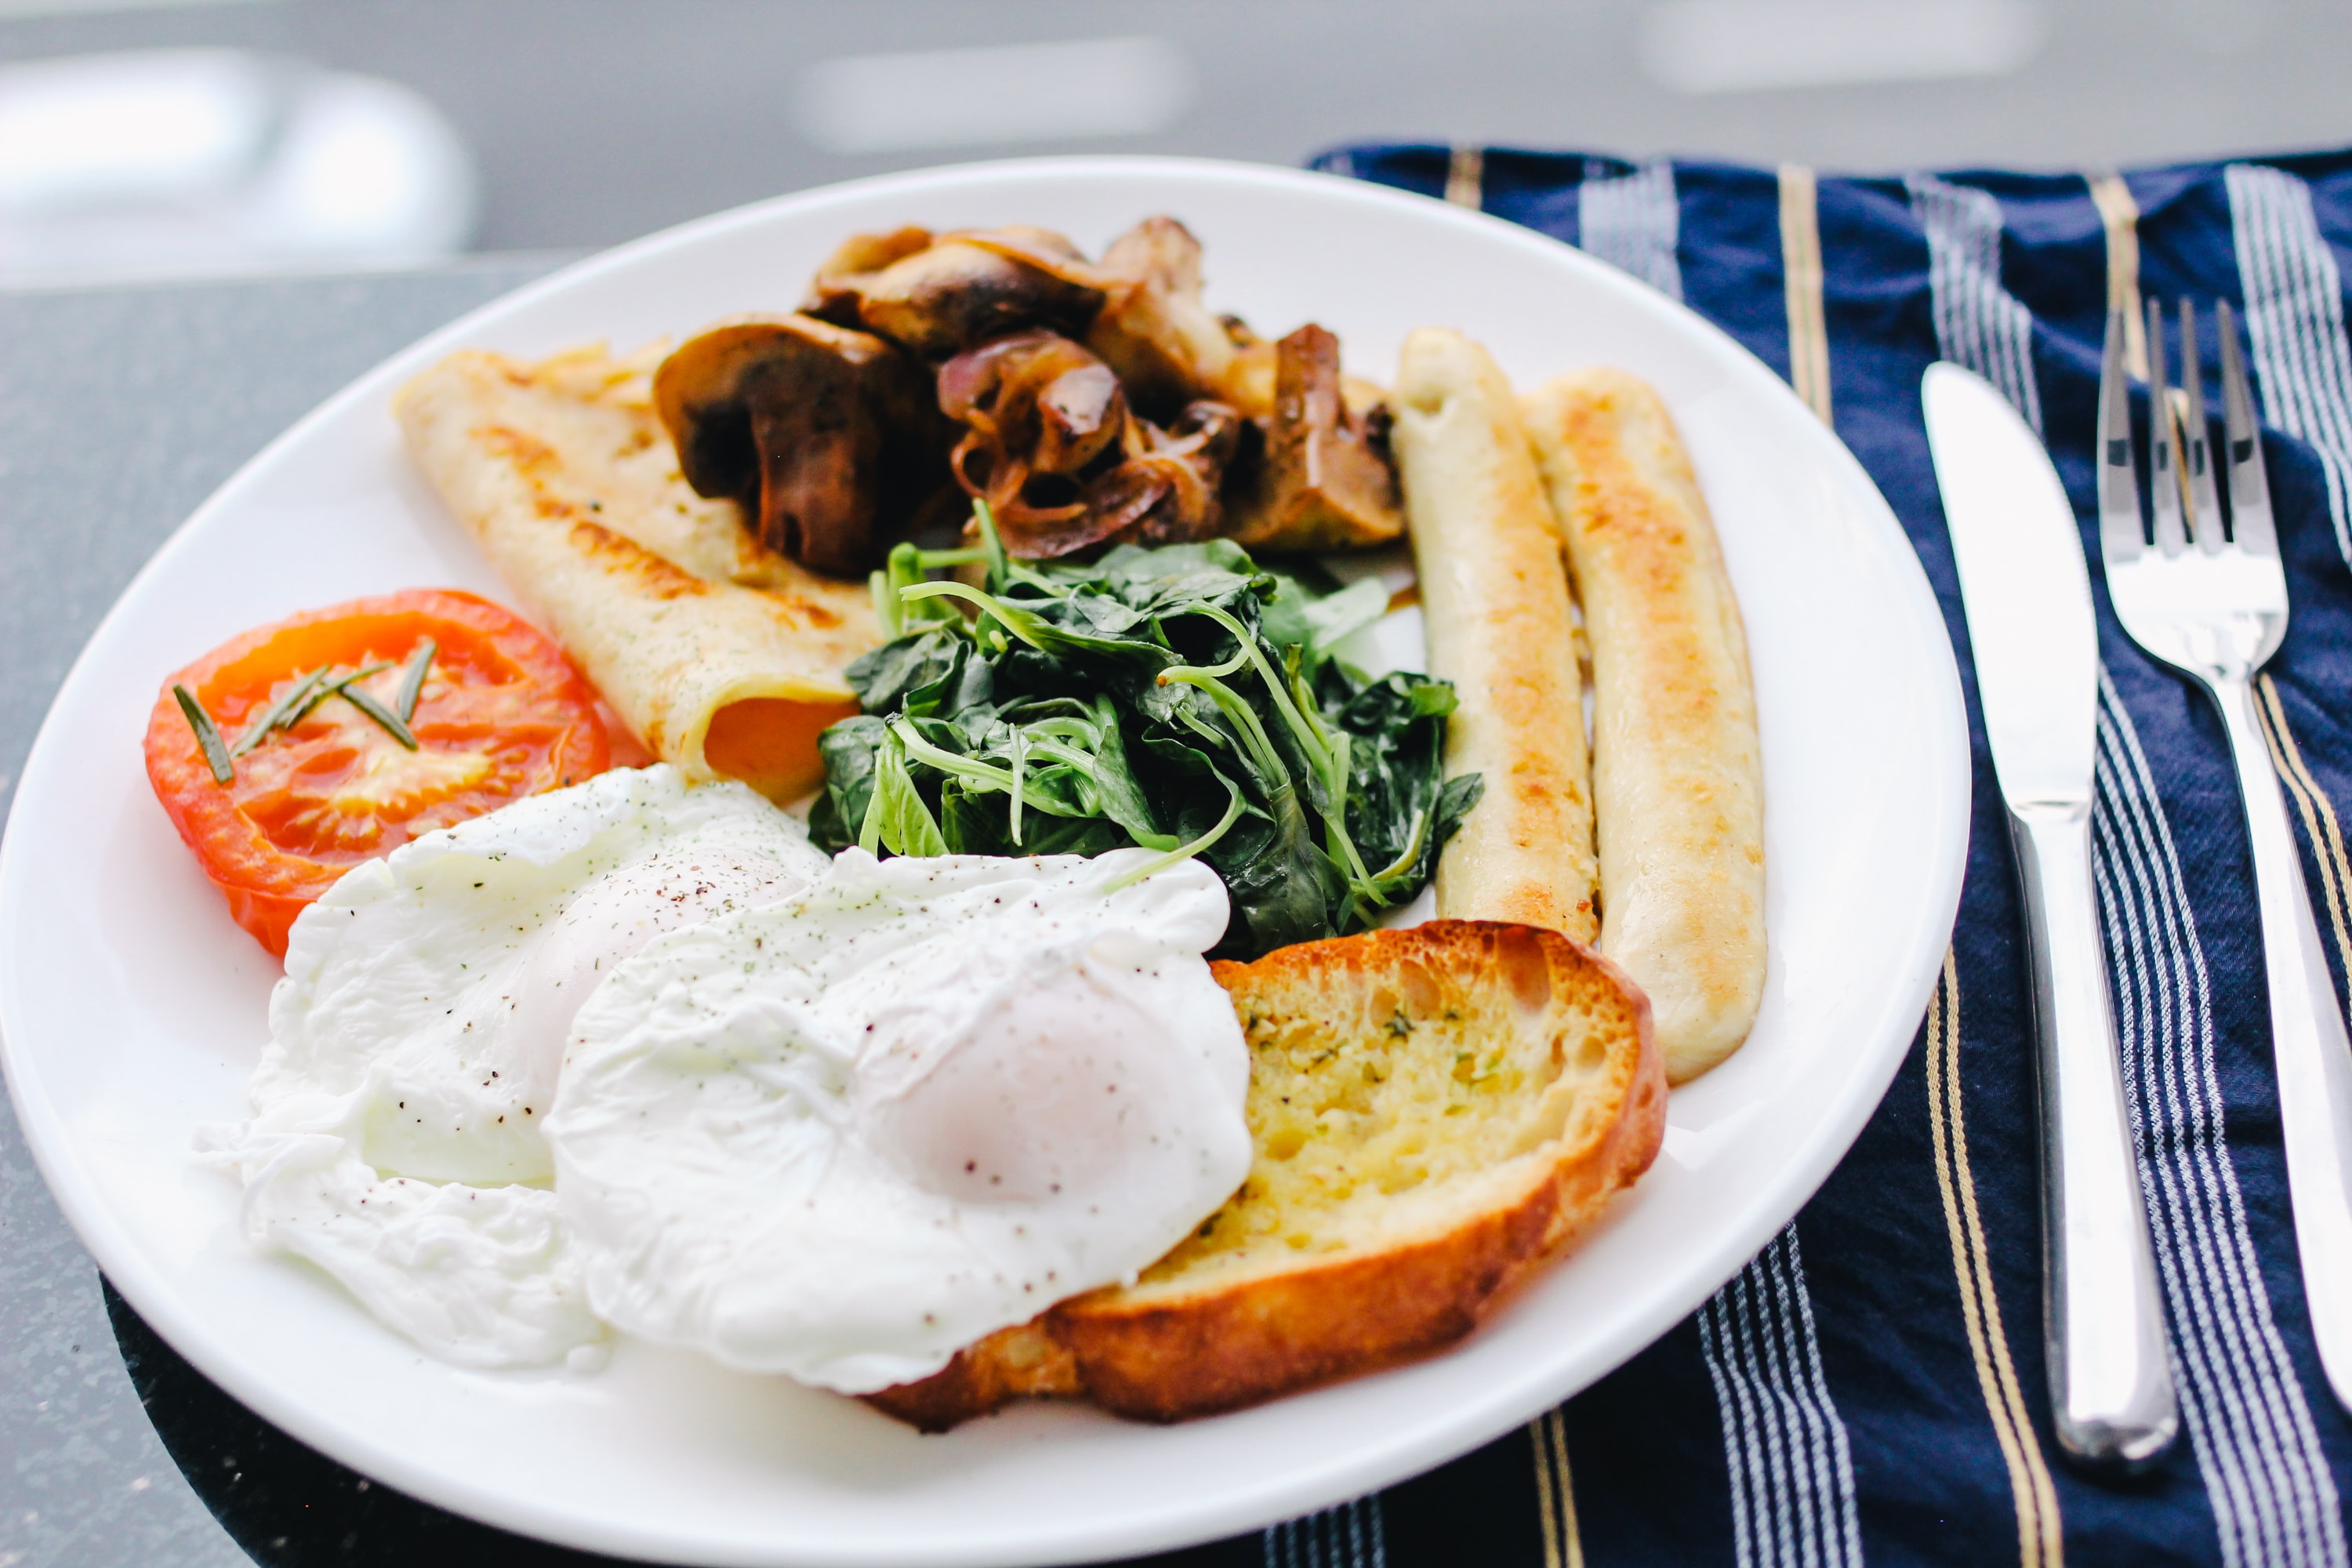 Hearty breakfast with eggs, toast, tomato, and vegetables